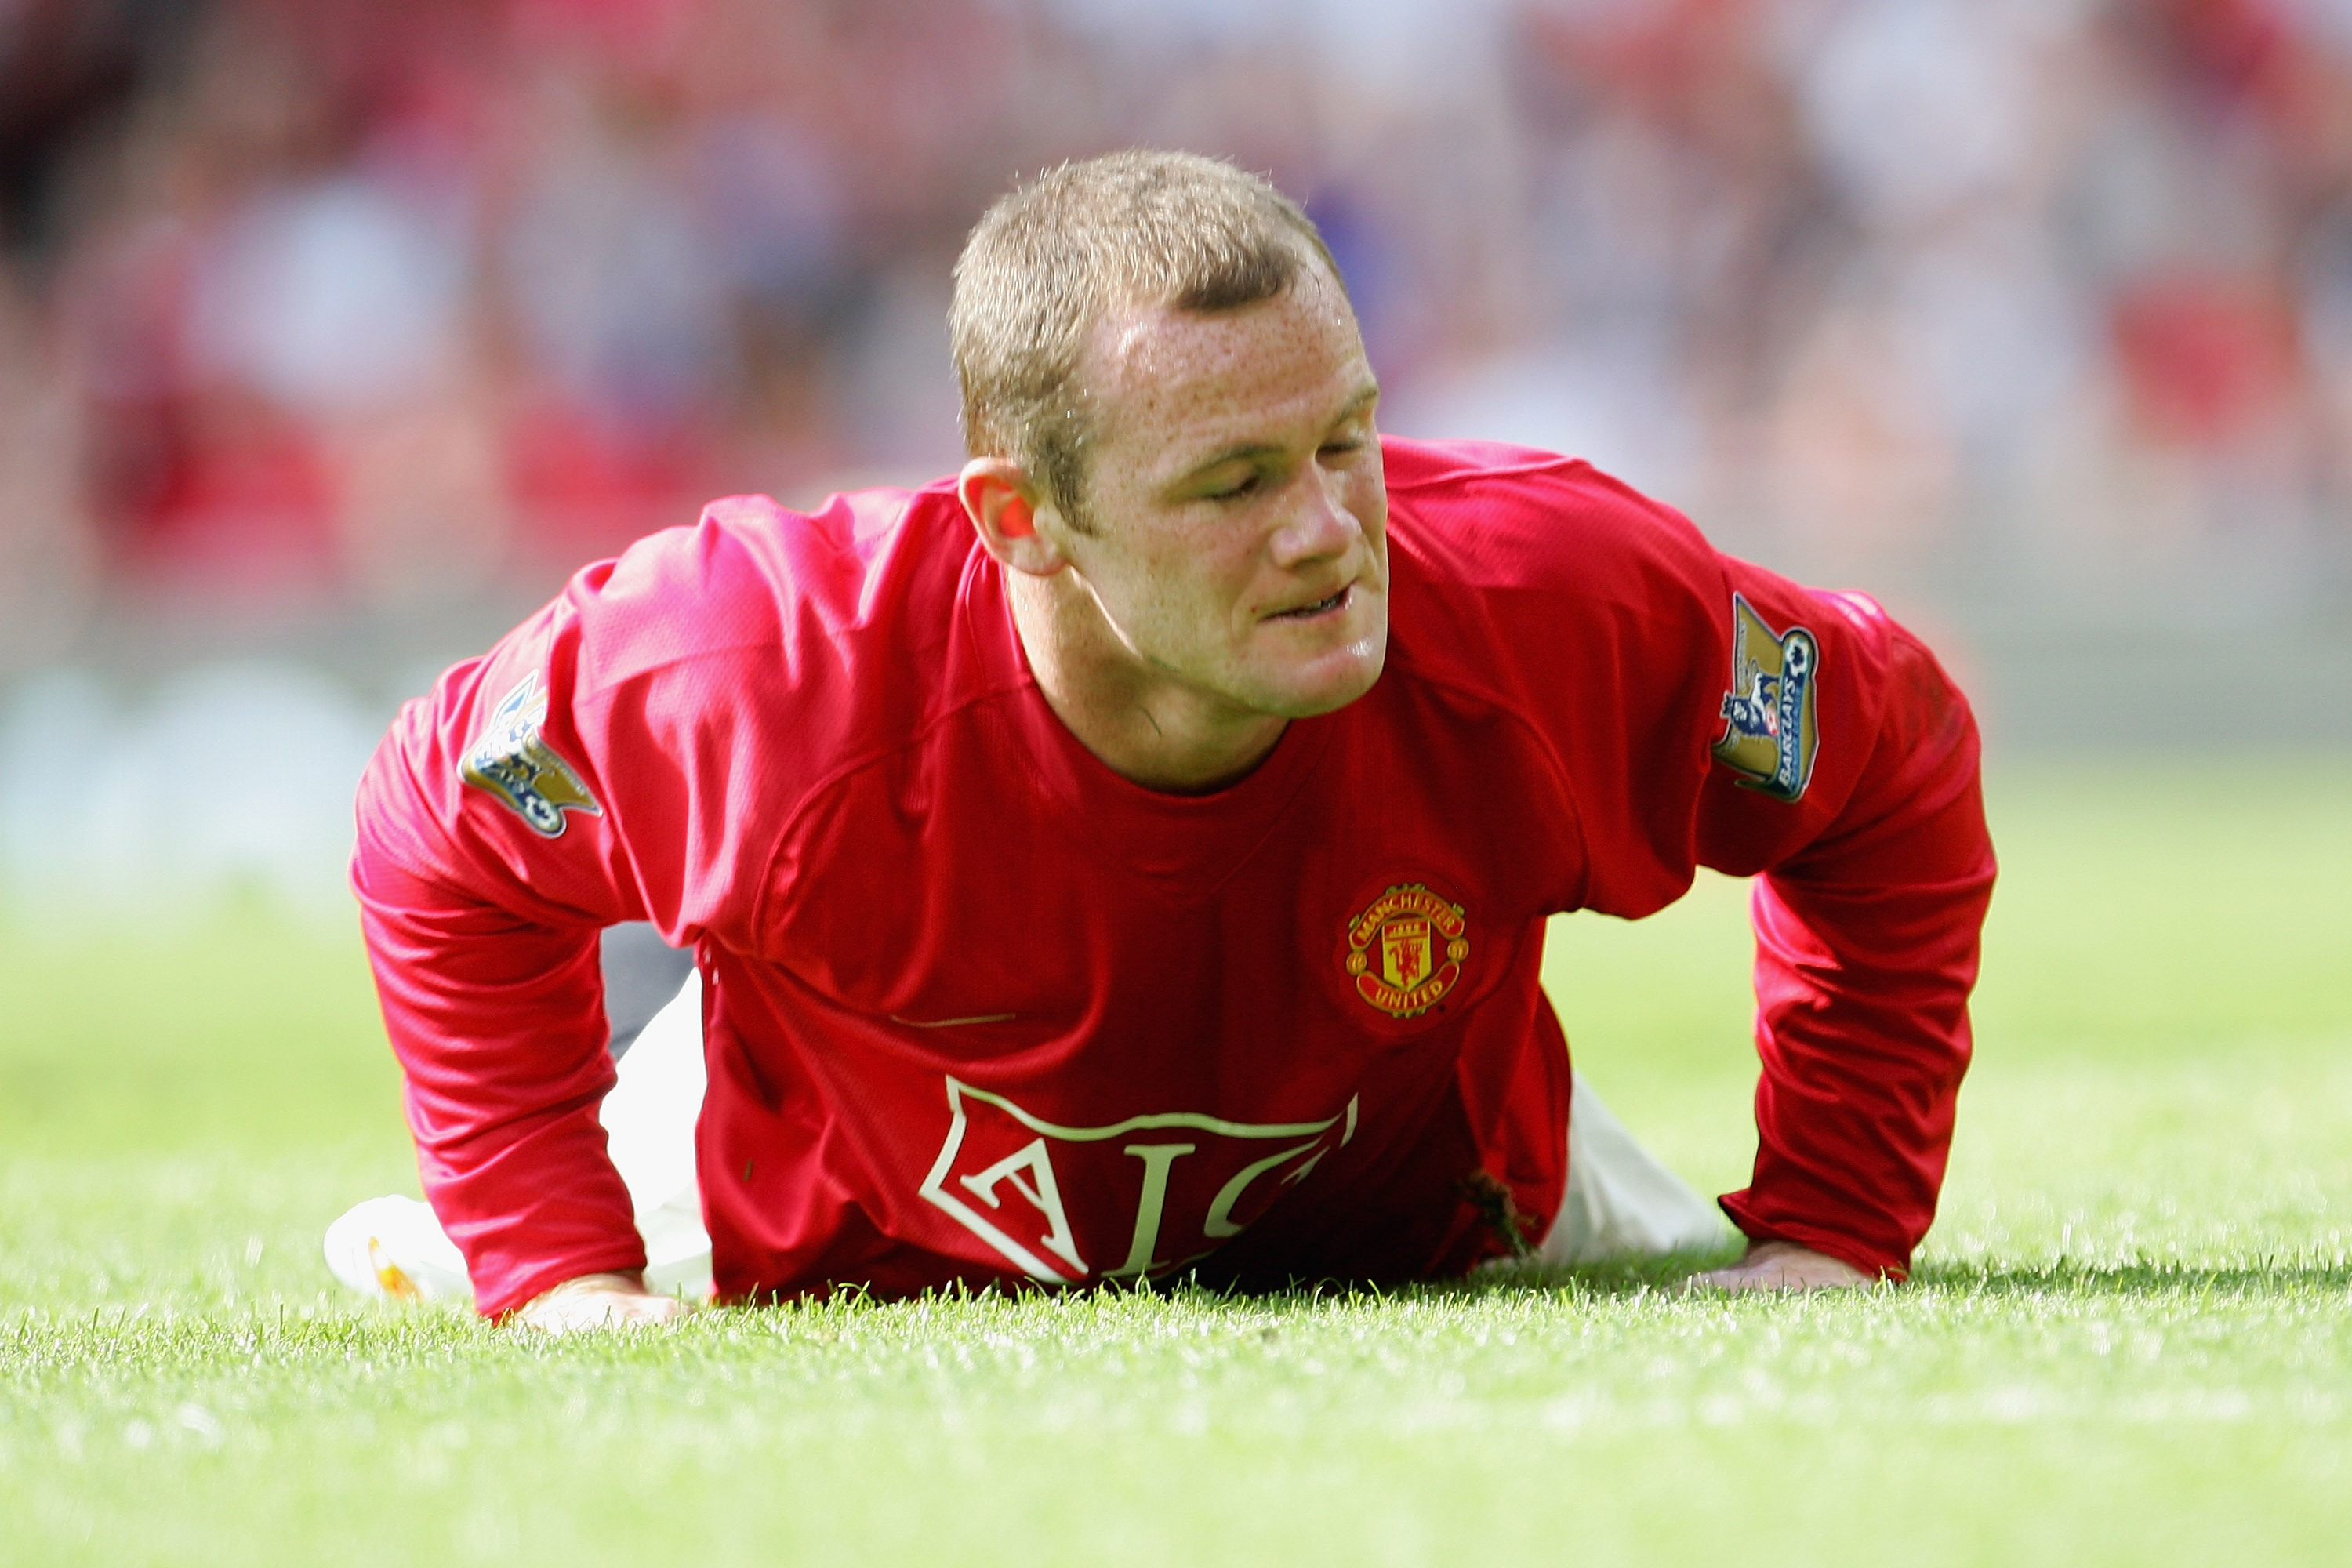 Man U to offer Rooney 40